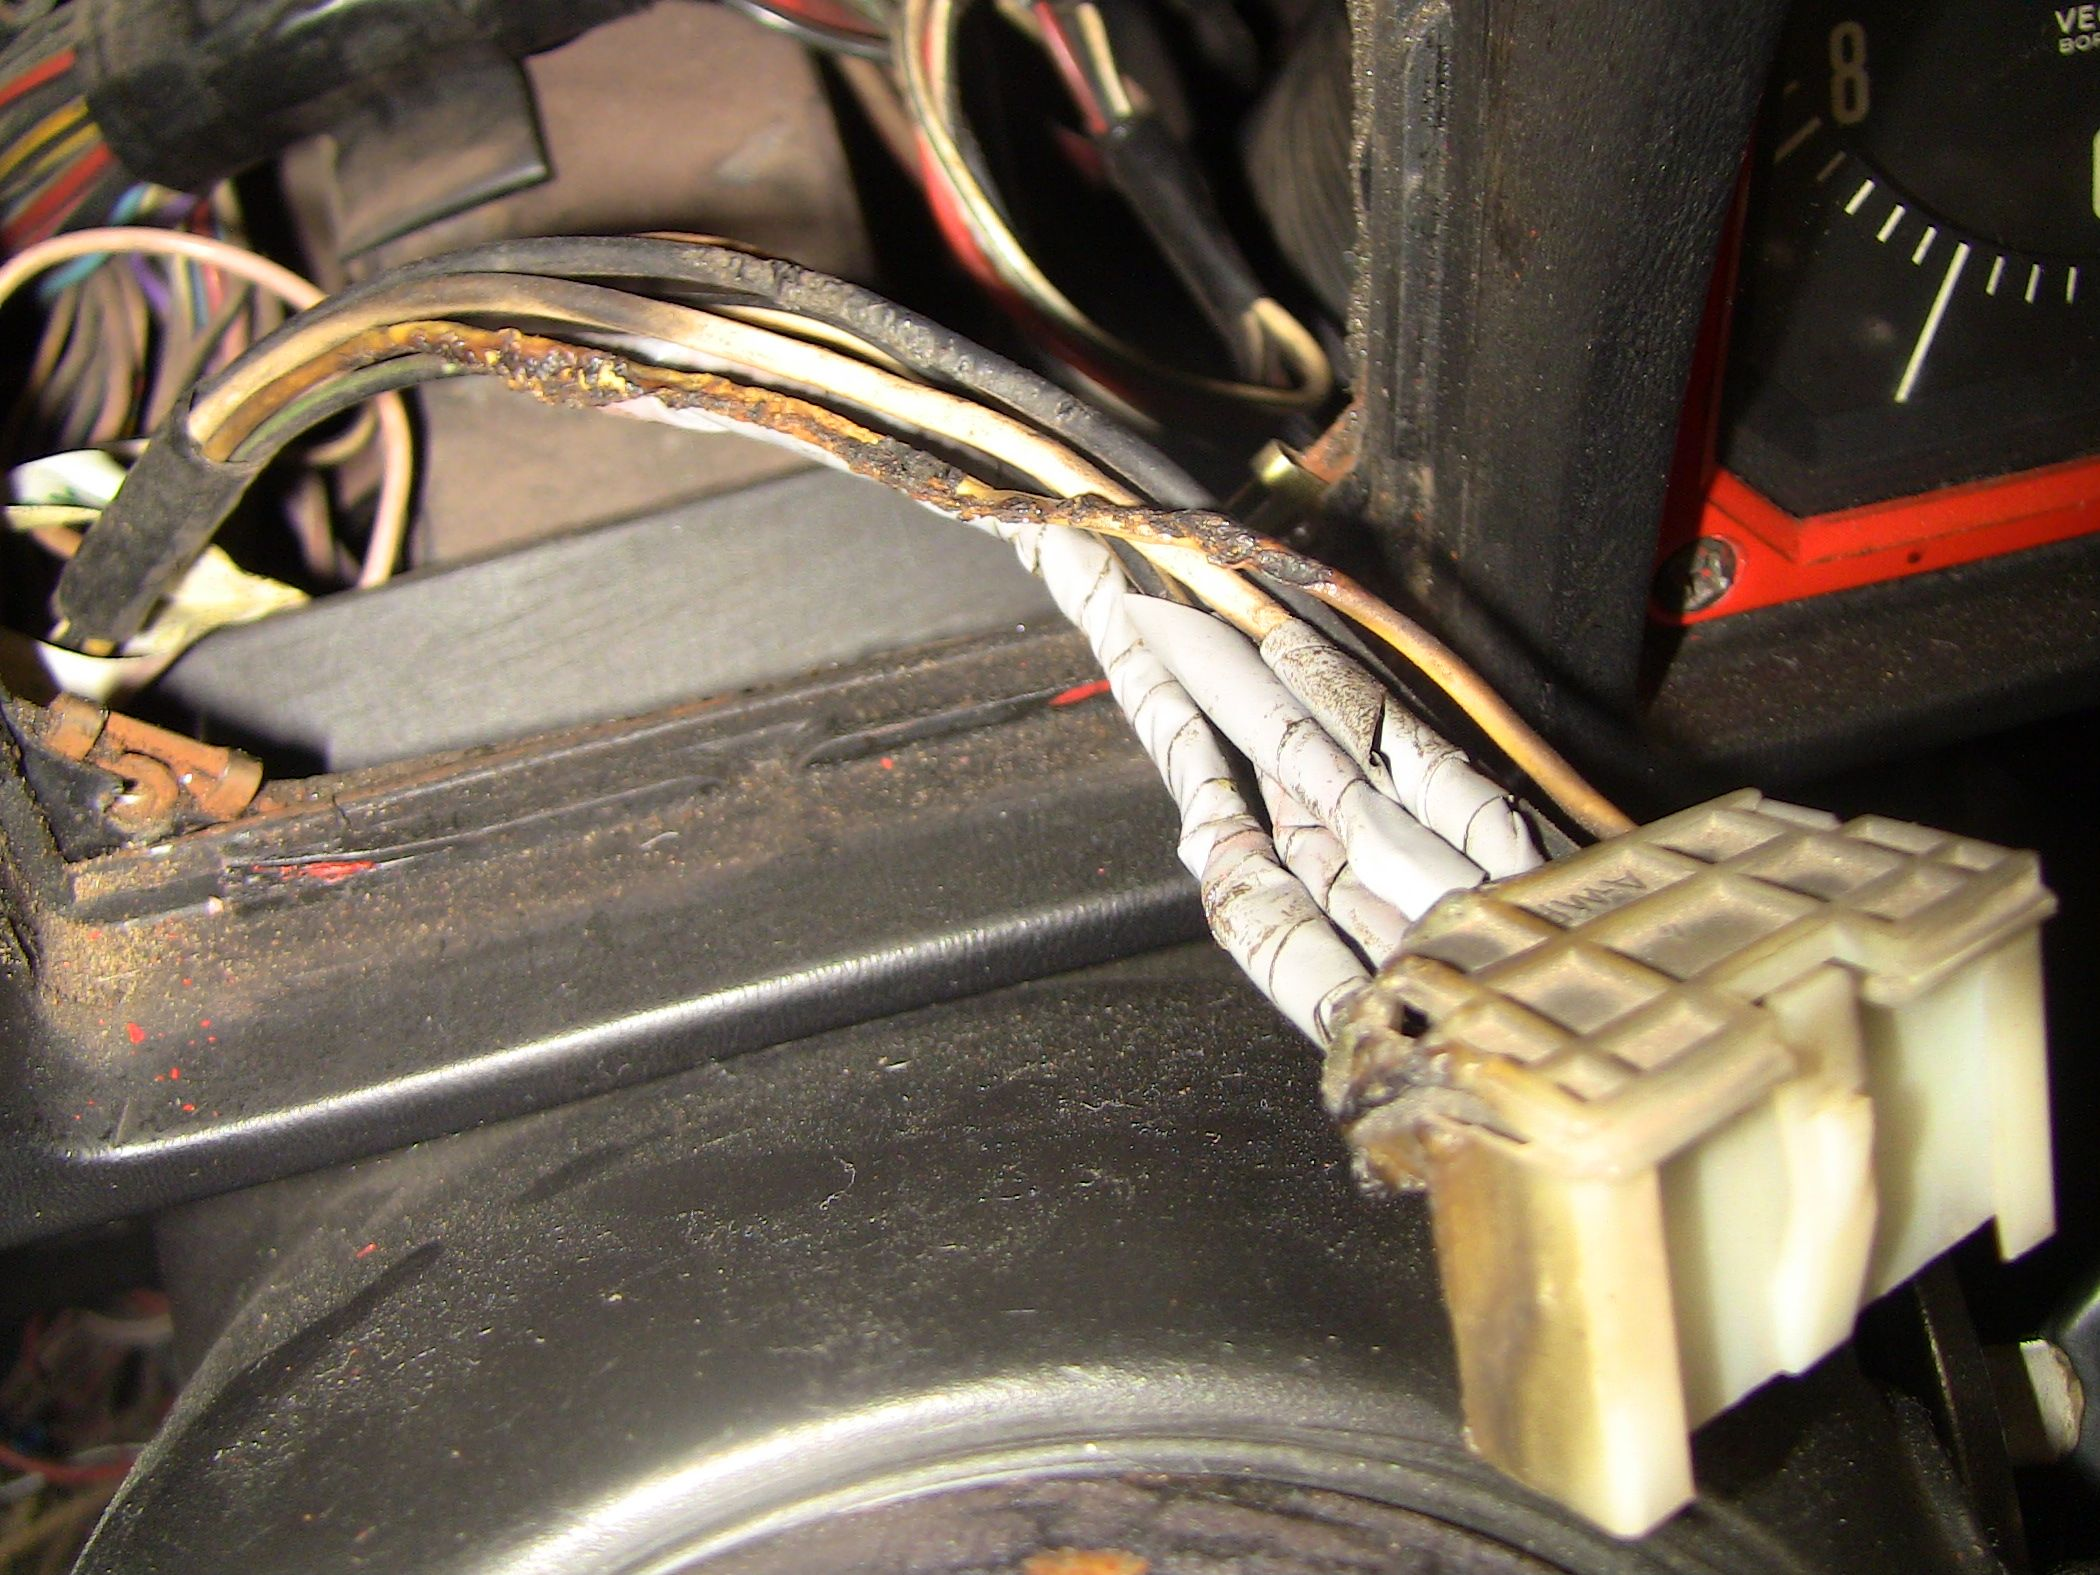 Melted Electricals Alfa Romeo Bulletin Board Forums Car Fuse Box The First Picture Shows A Bosch Black With Part Number 0 335 411 040 Which My Google Fu Translated Into Tone Sequence Relay Loud Horn